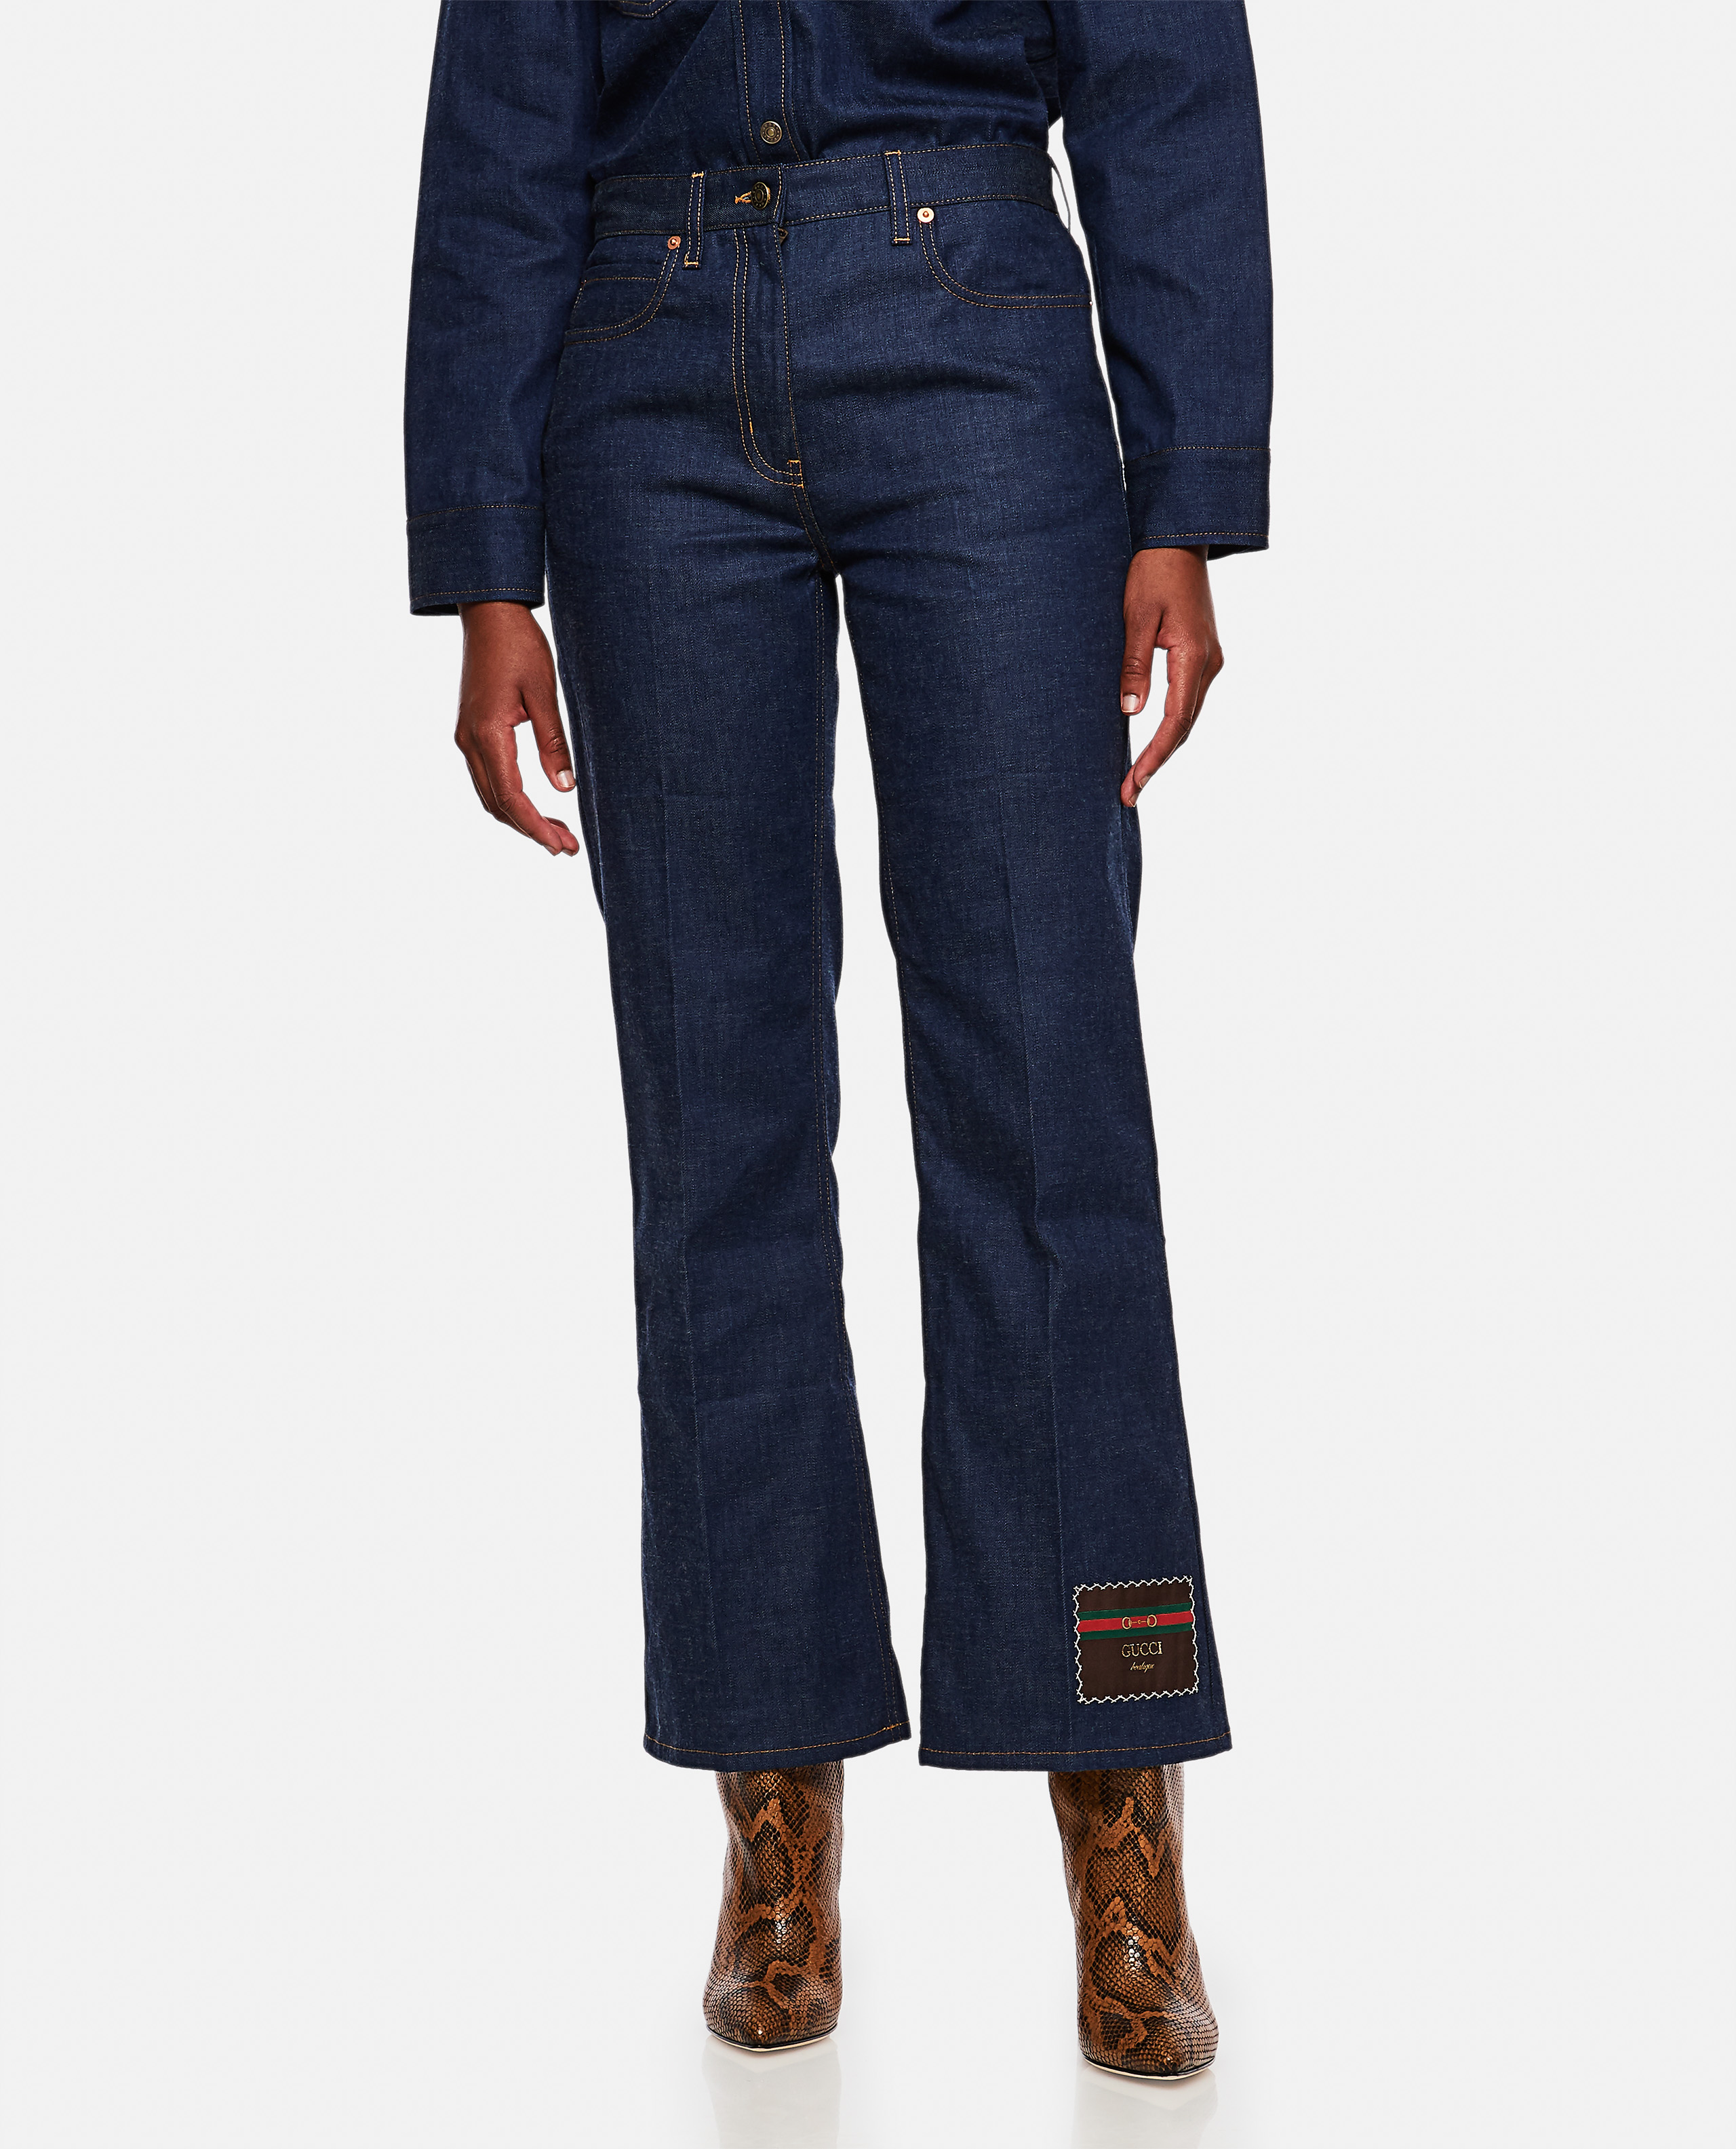 Denim trousers with Gucci Boutique patch